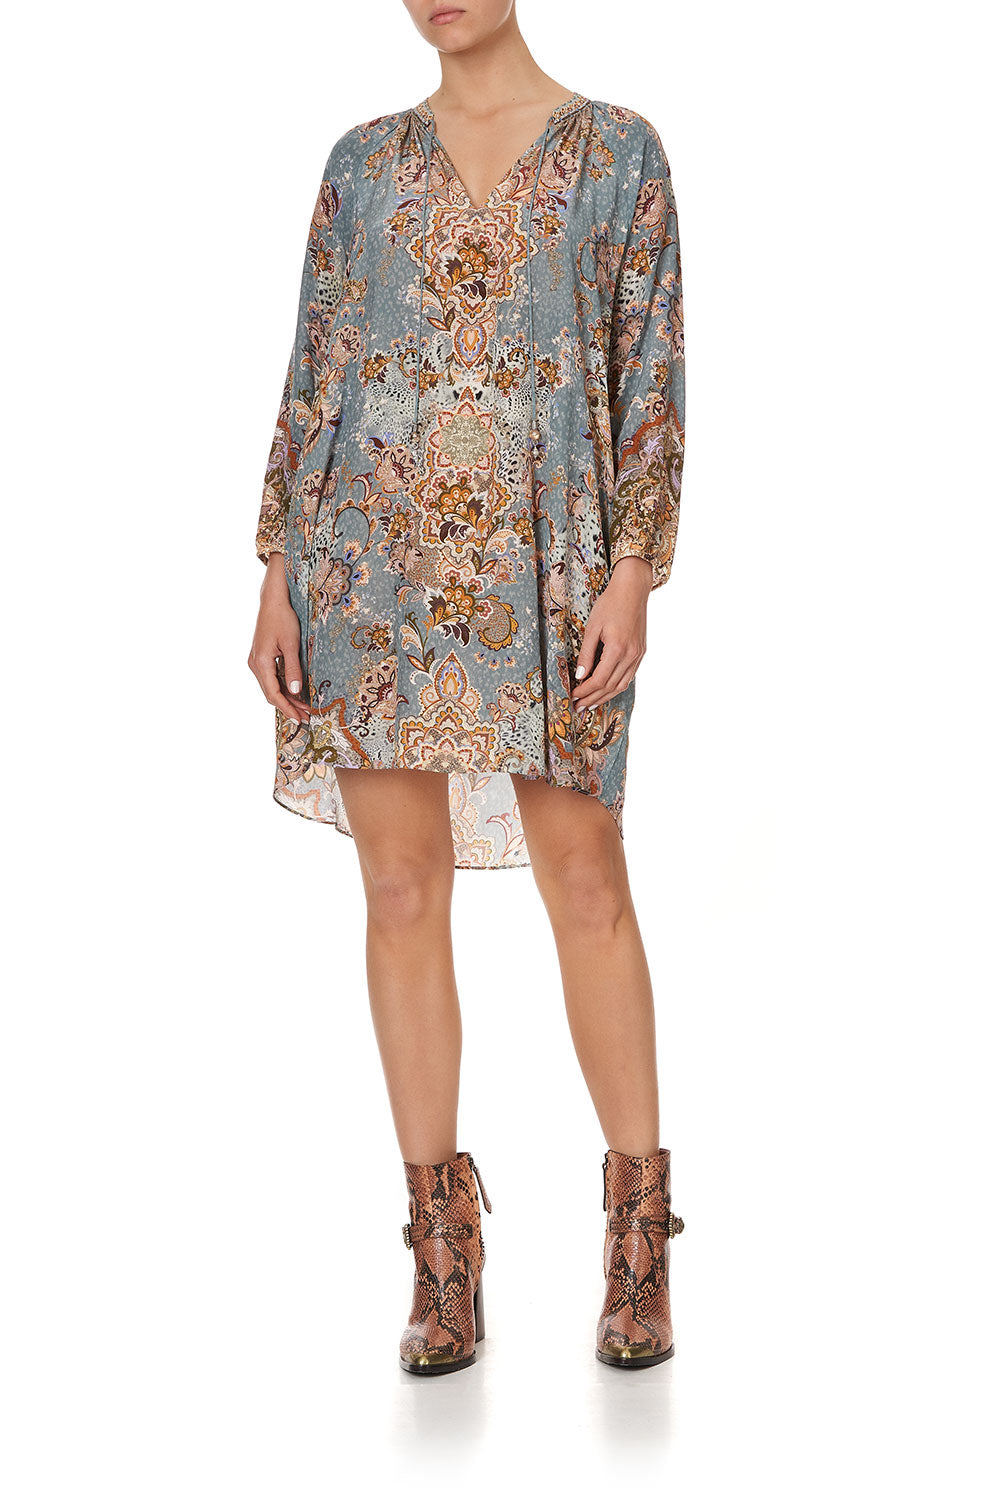 RAGLAN SLEEVE TUNIC DRESS LE PALAIS DU ZAHIR